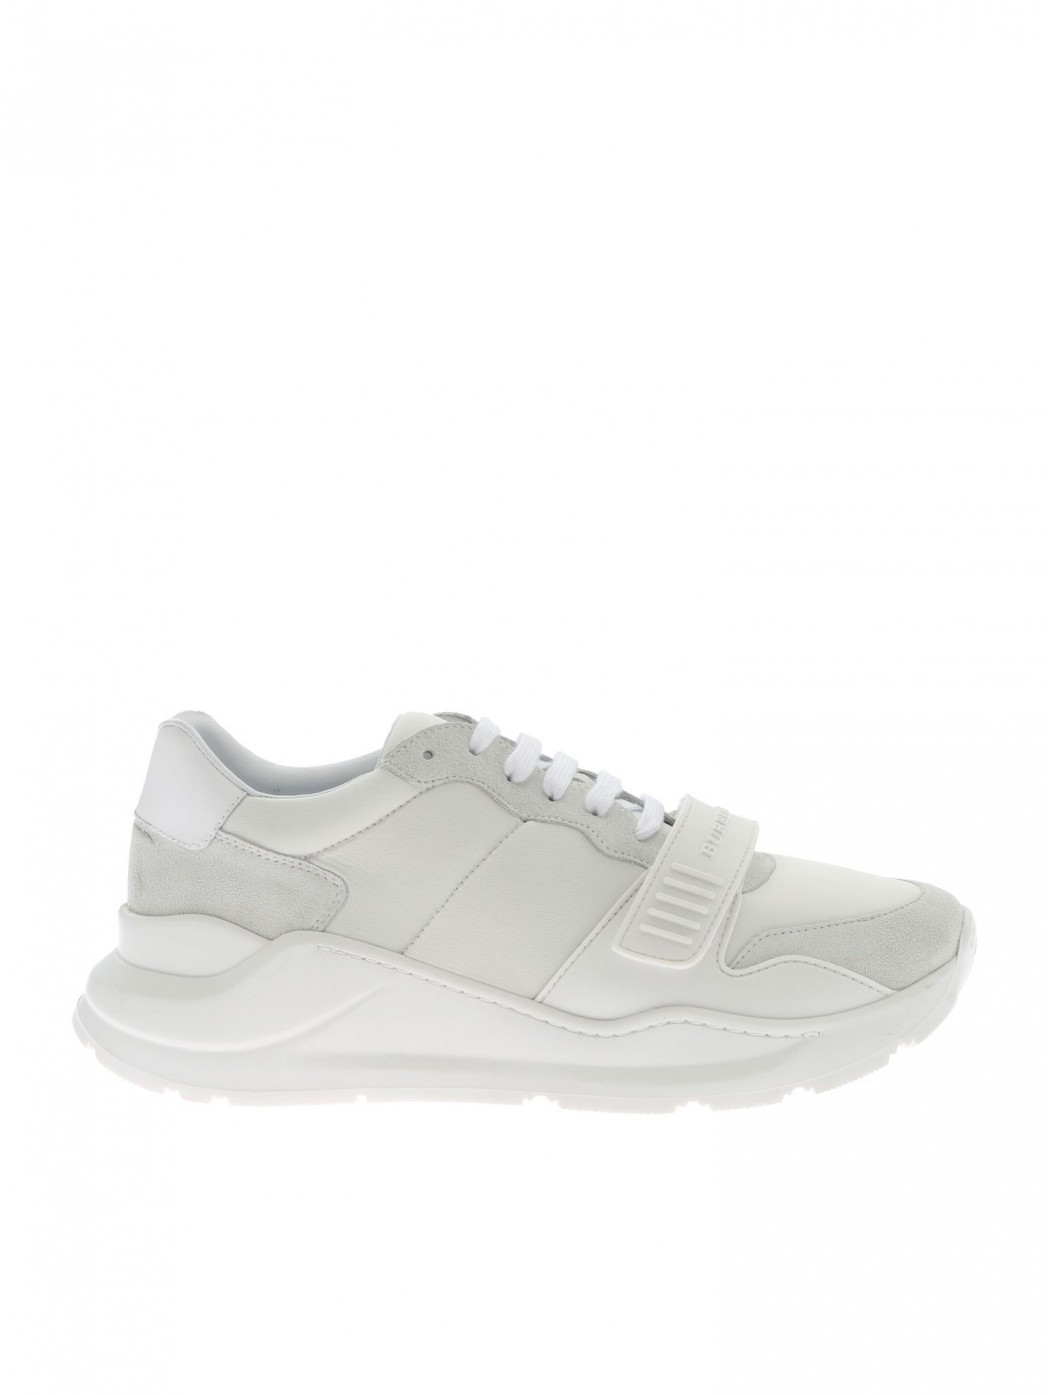 BURBERRY 4078716 OPTICWHITE SNEAKERS